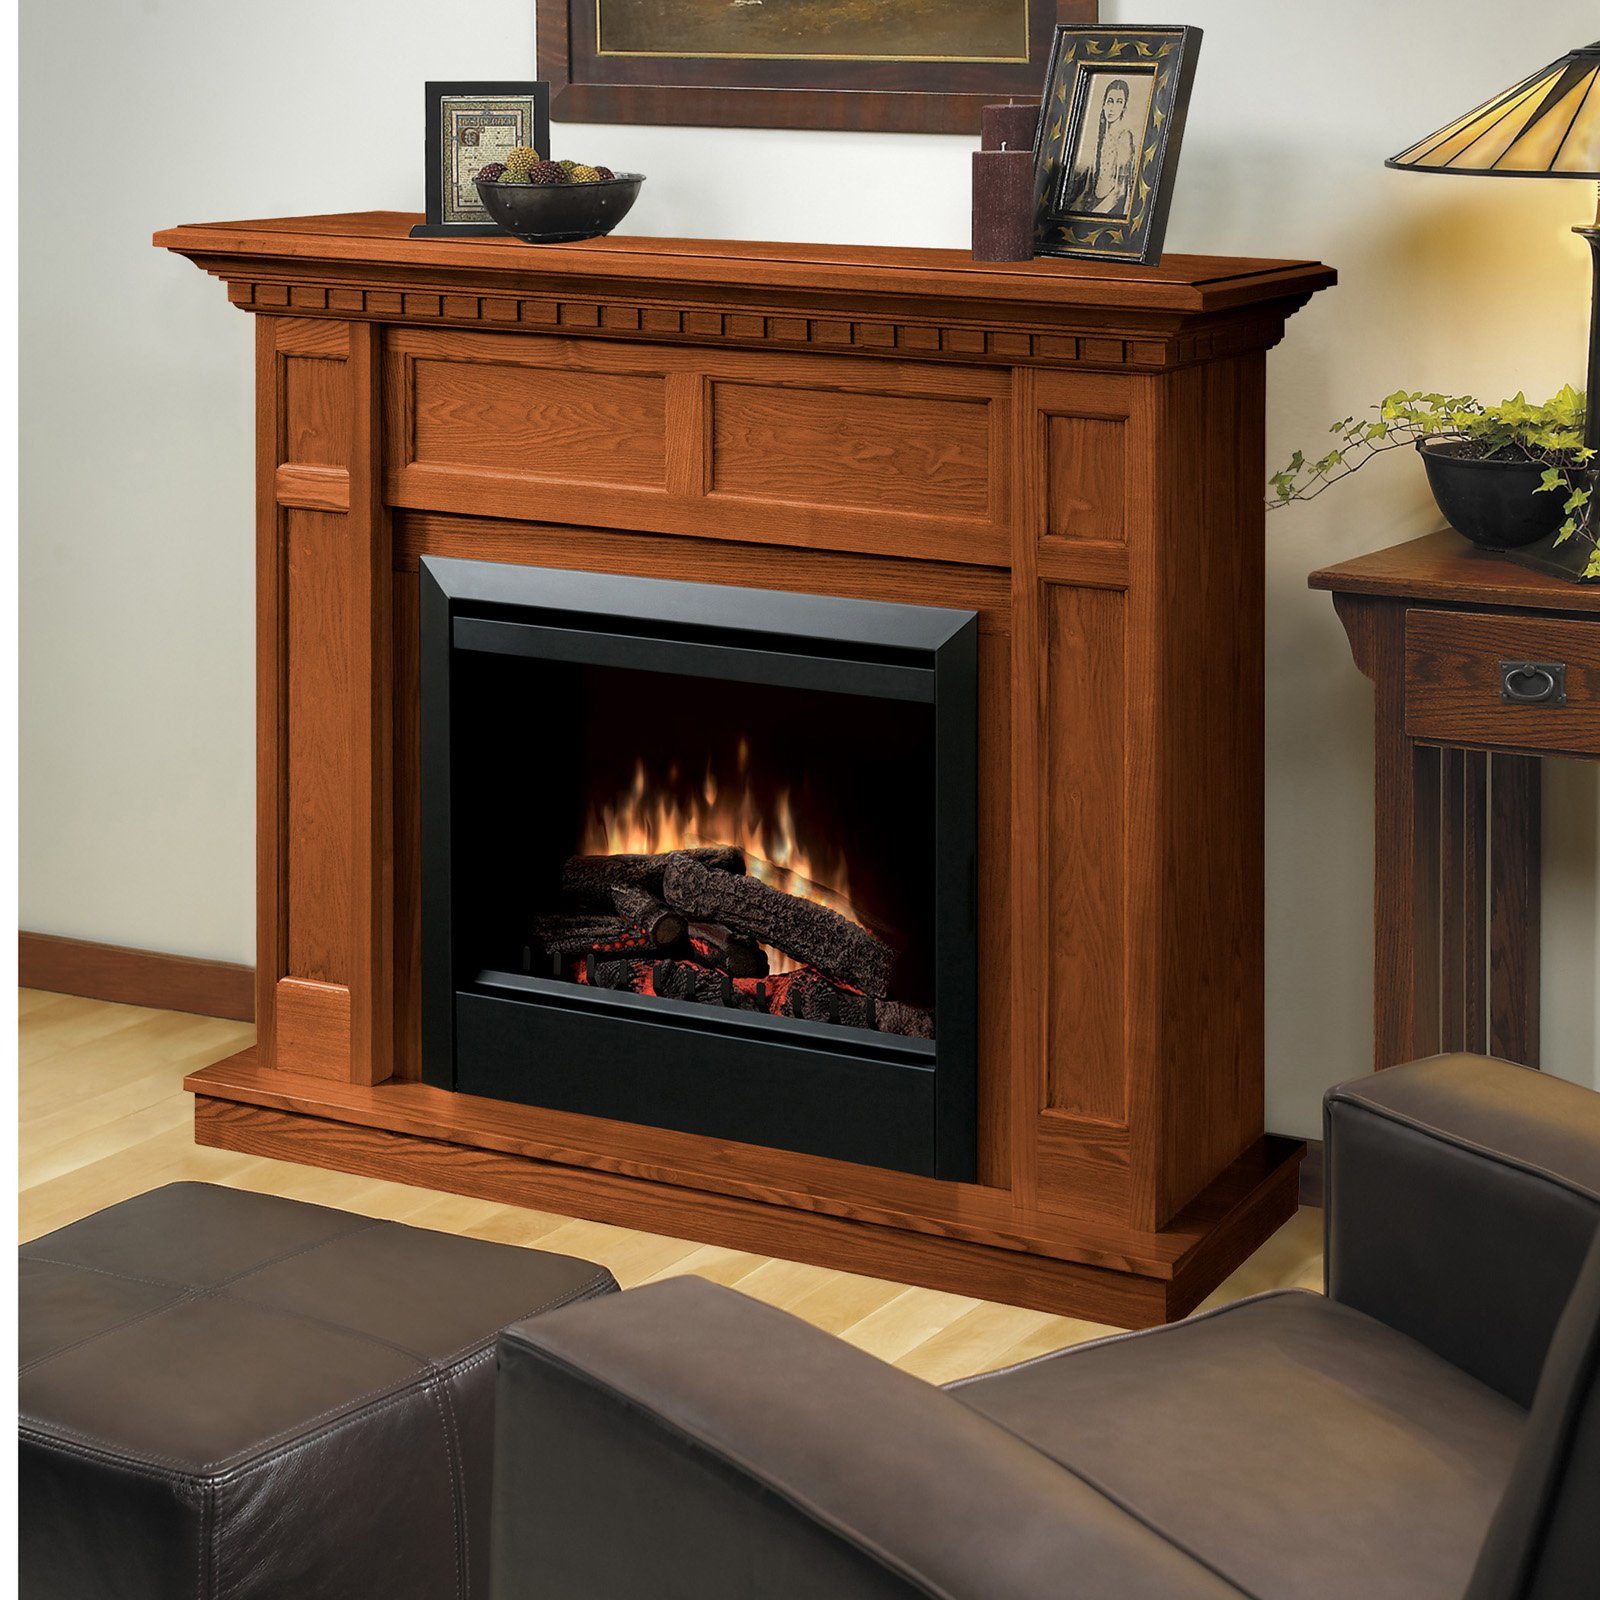 Wondrous Electric Built In Fireplaces Electric Wall Fireplaces Home Interior And Landscaping Ologienasavecom